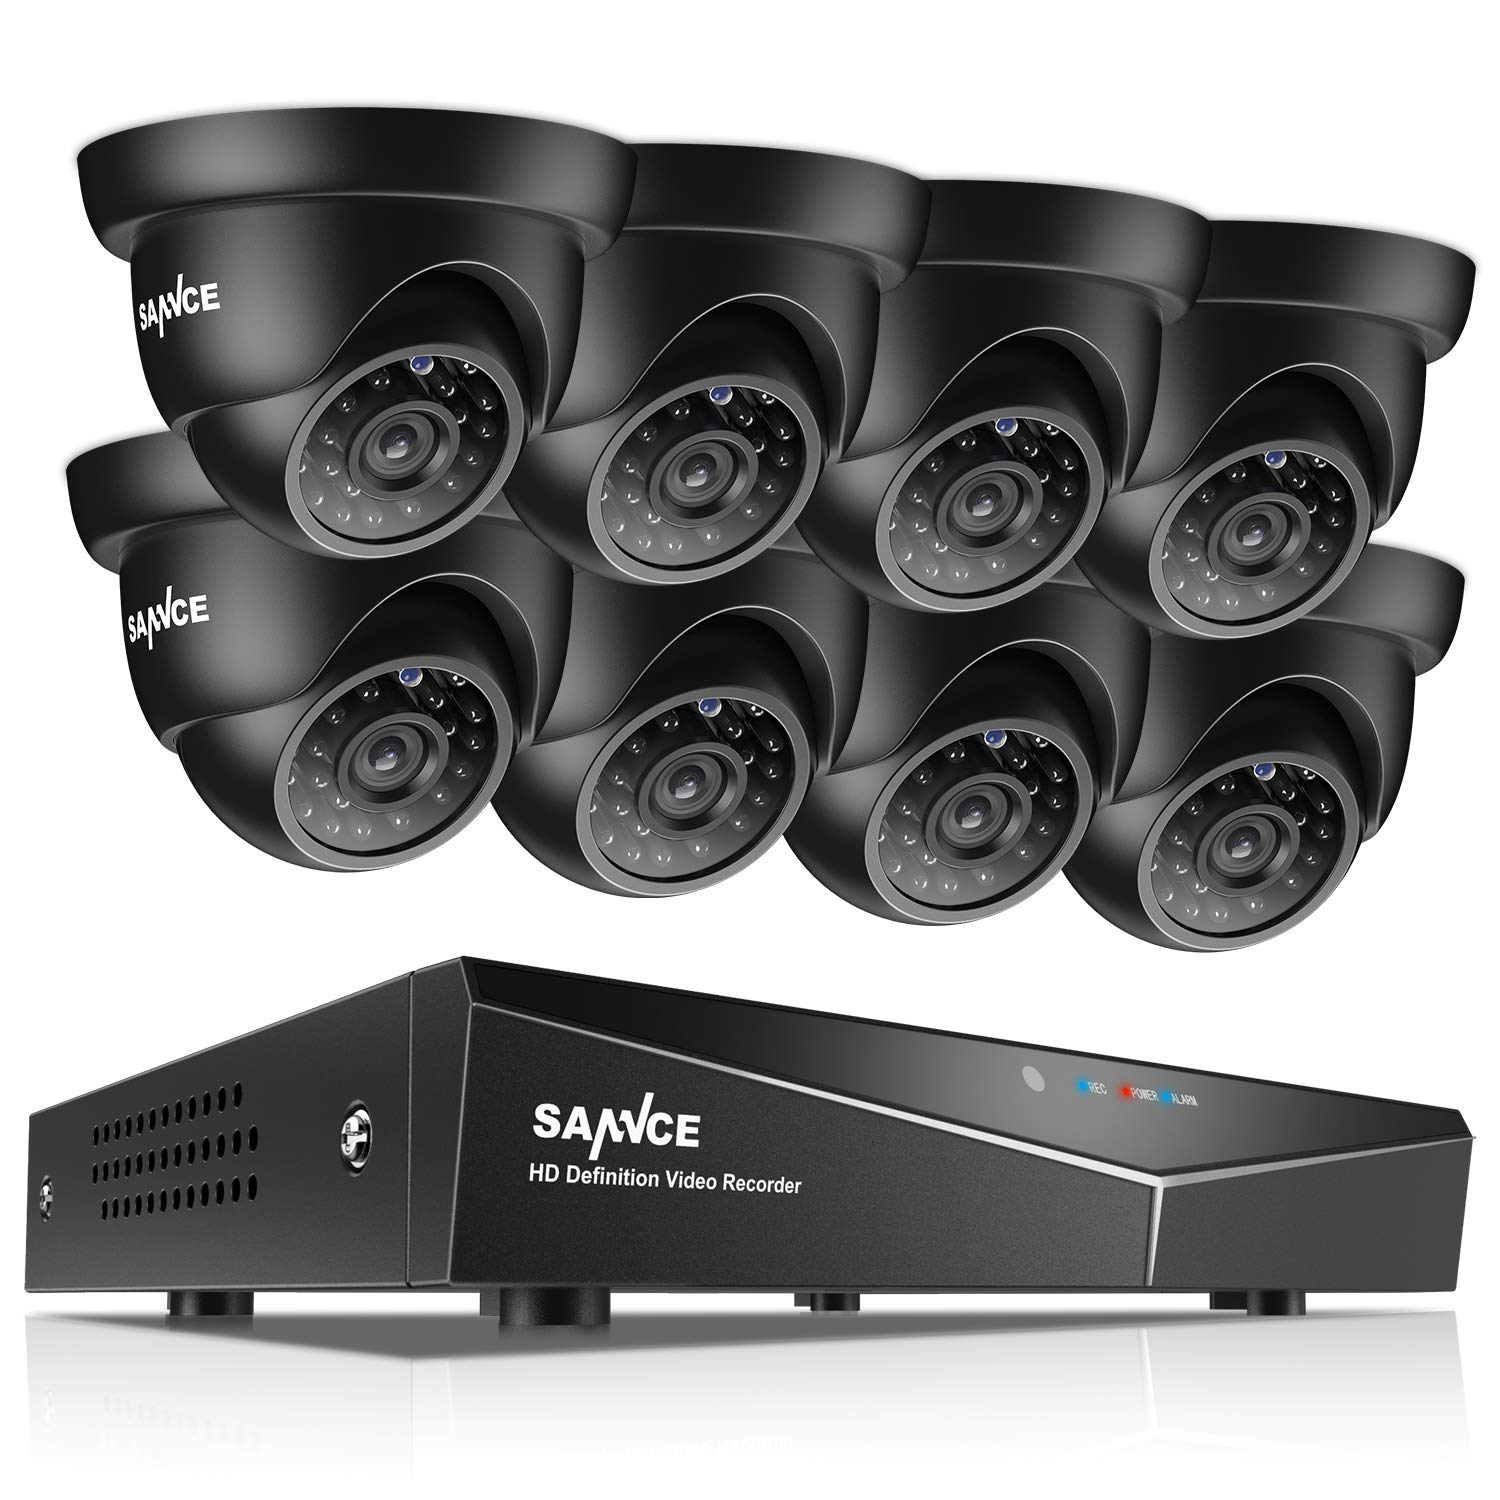 SANNCE 8-Channel HD 1080N Home Security Camera System and 8 720P Indoor Outdoor Weatherproof Cameras with IR Night Vision LEDs, Remote Access – NO HDD